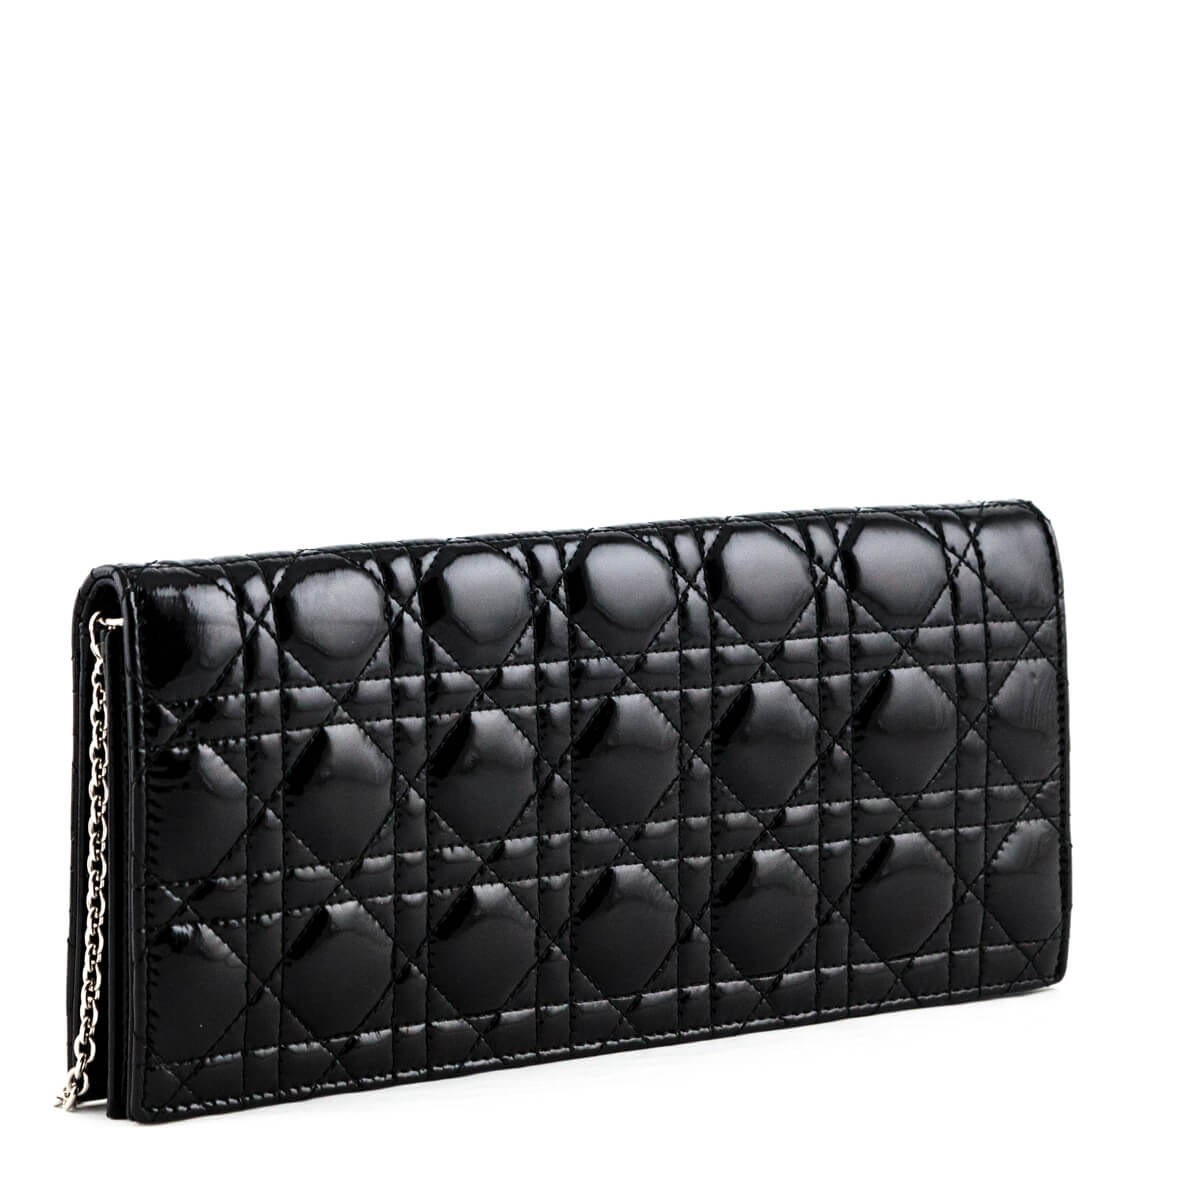 6bfcfe47b54aac ... Dior Black Patent Cannage Lady Dior Convertible Clutch - LOVE that BAG  - Preowned Authentic Designer ...